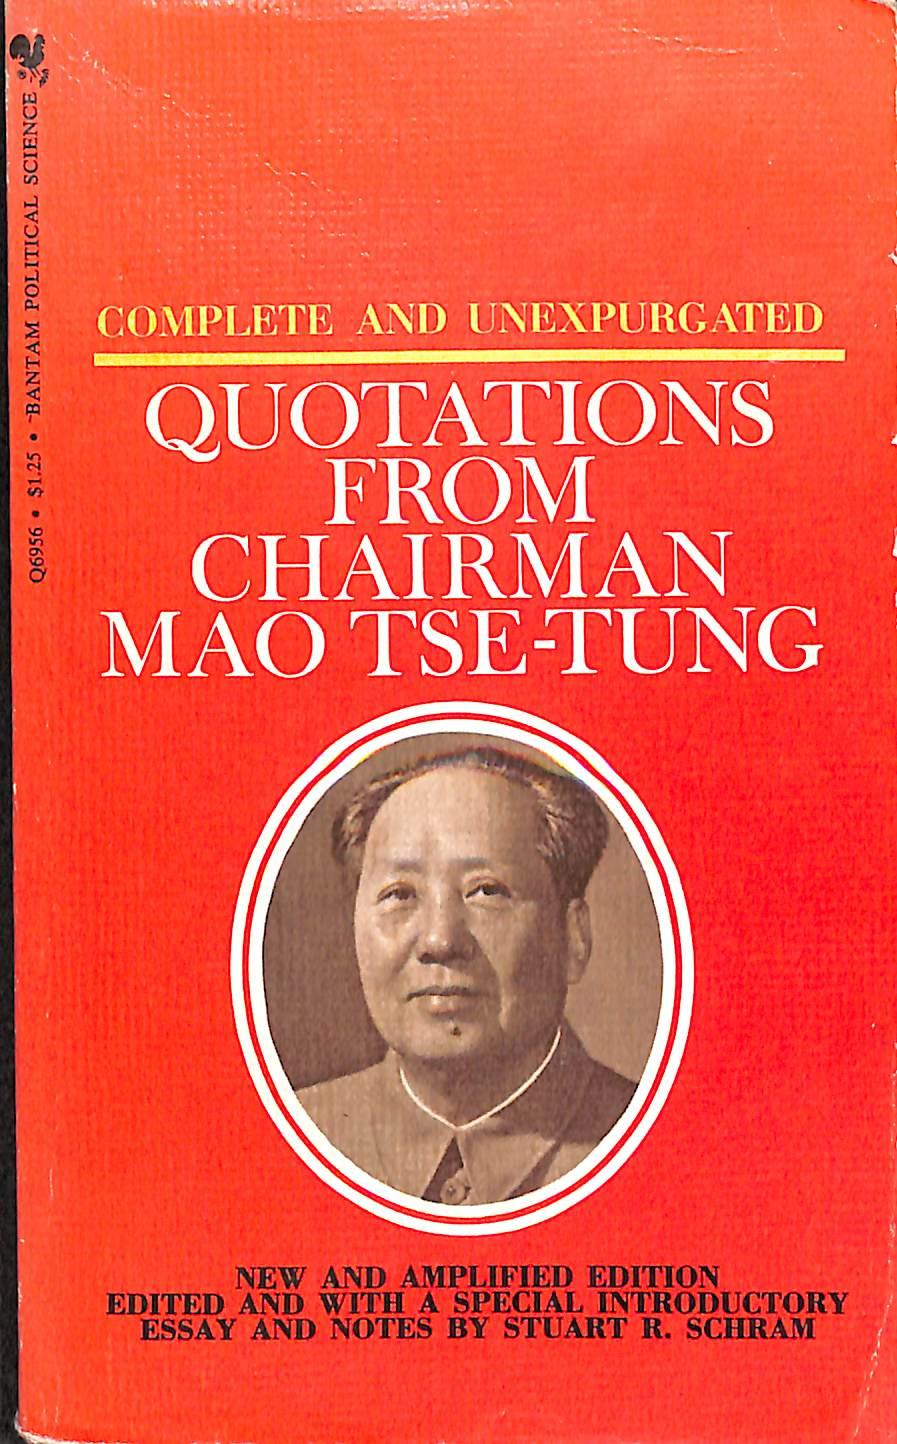 quotations from chairman mao by mao